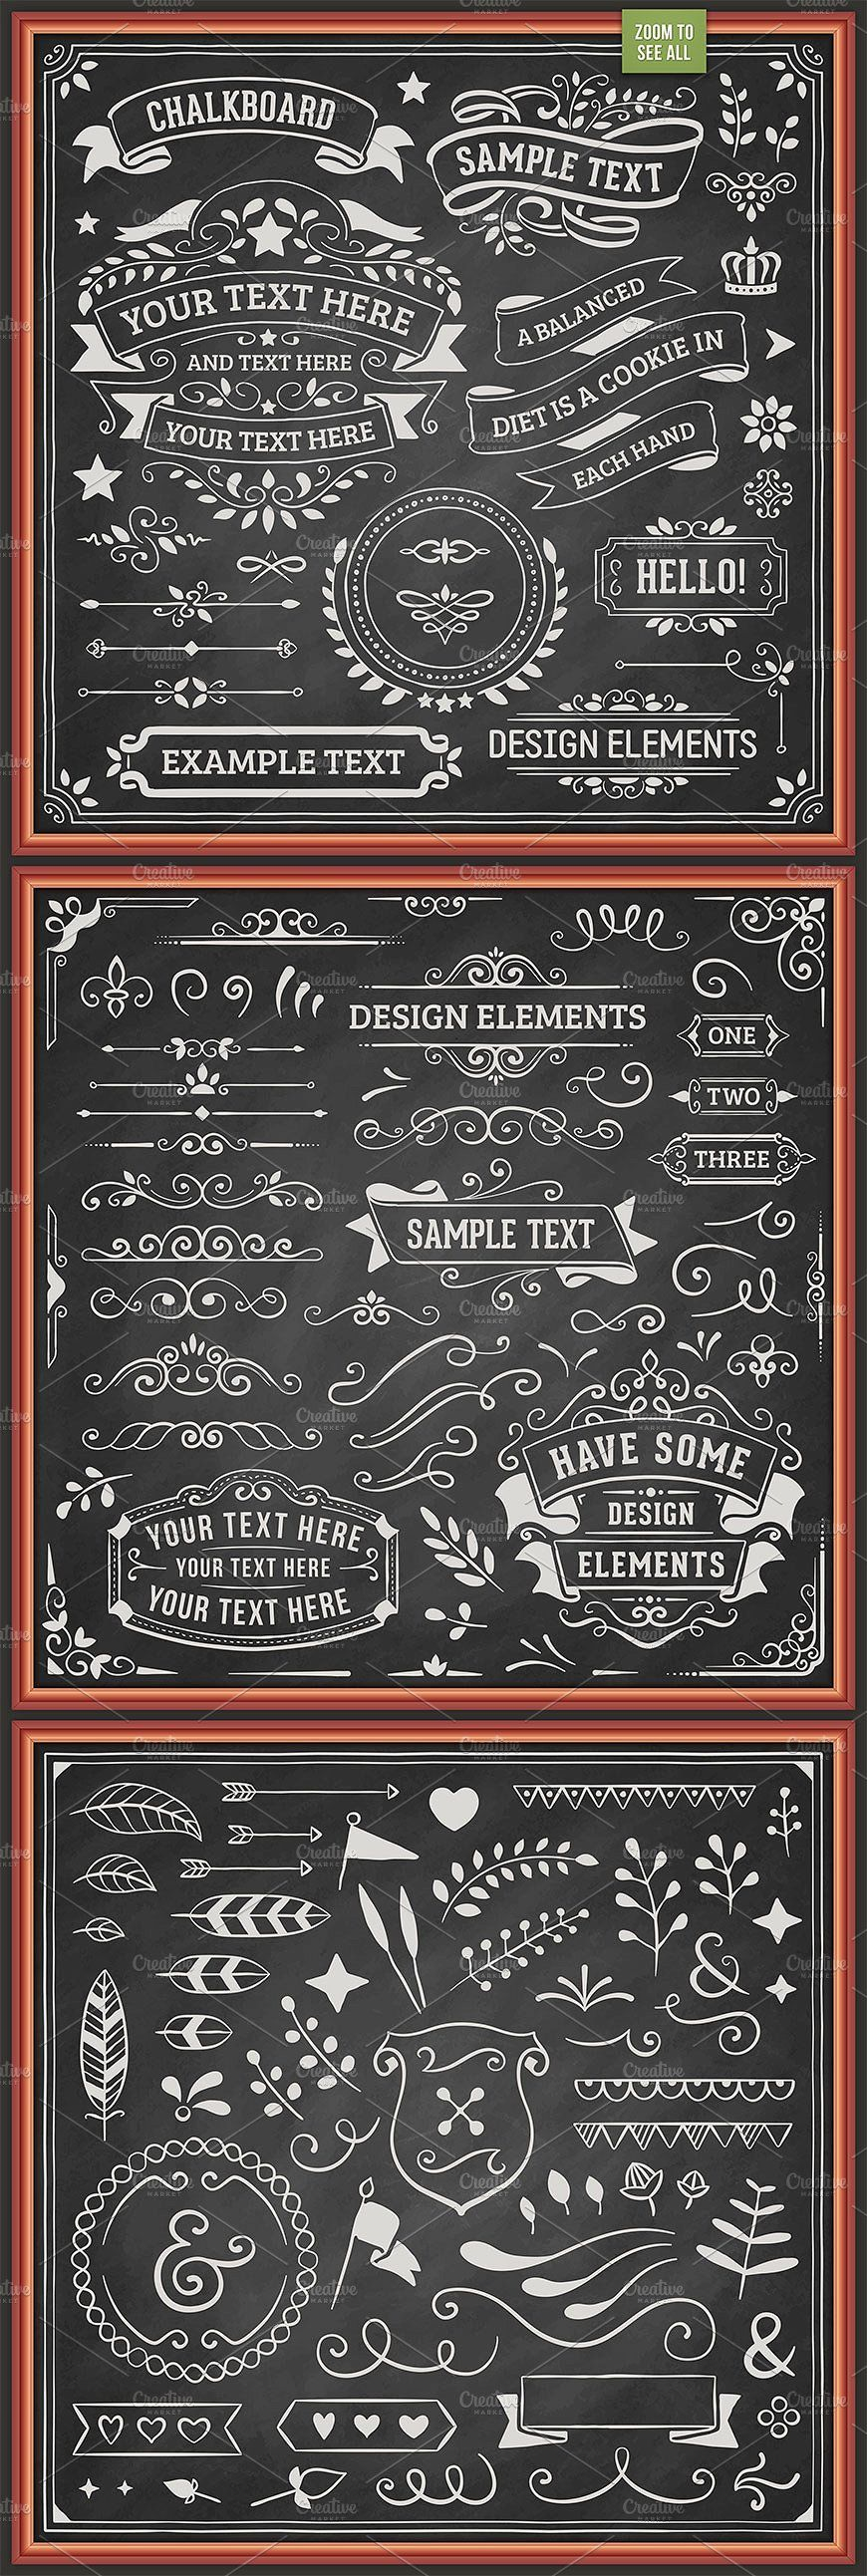 ad  chalkboard design elements by swedish points on